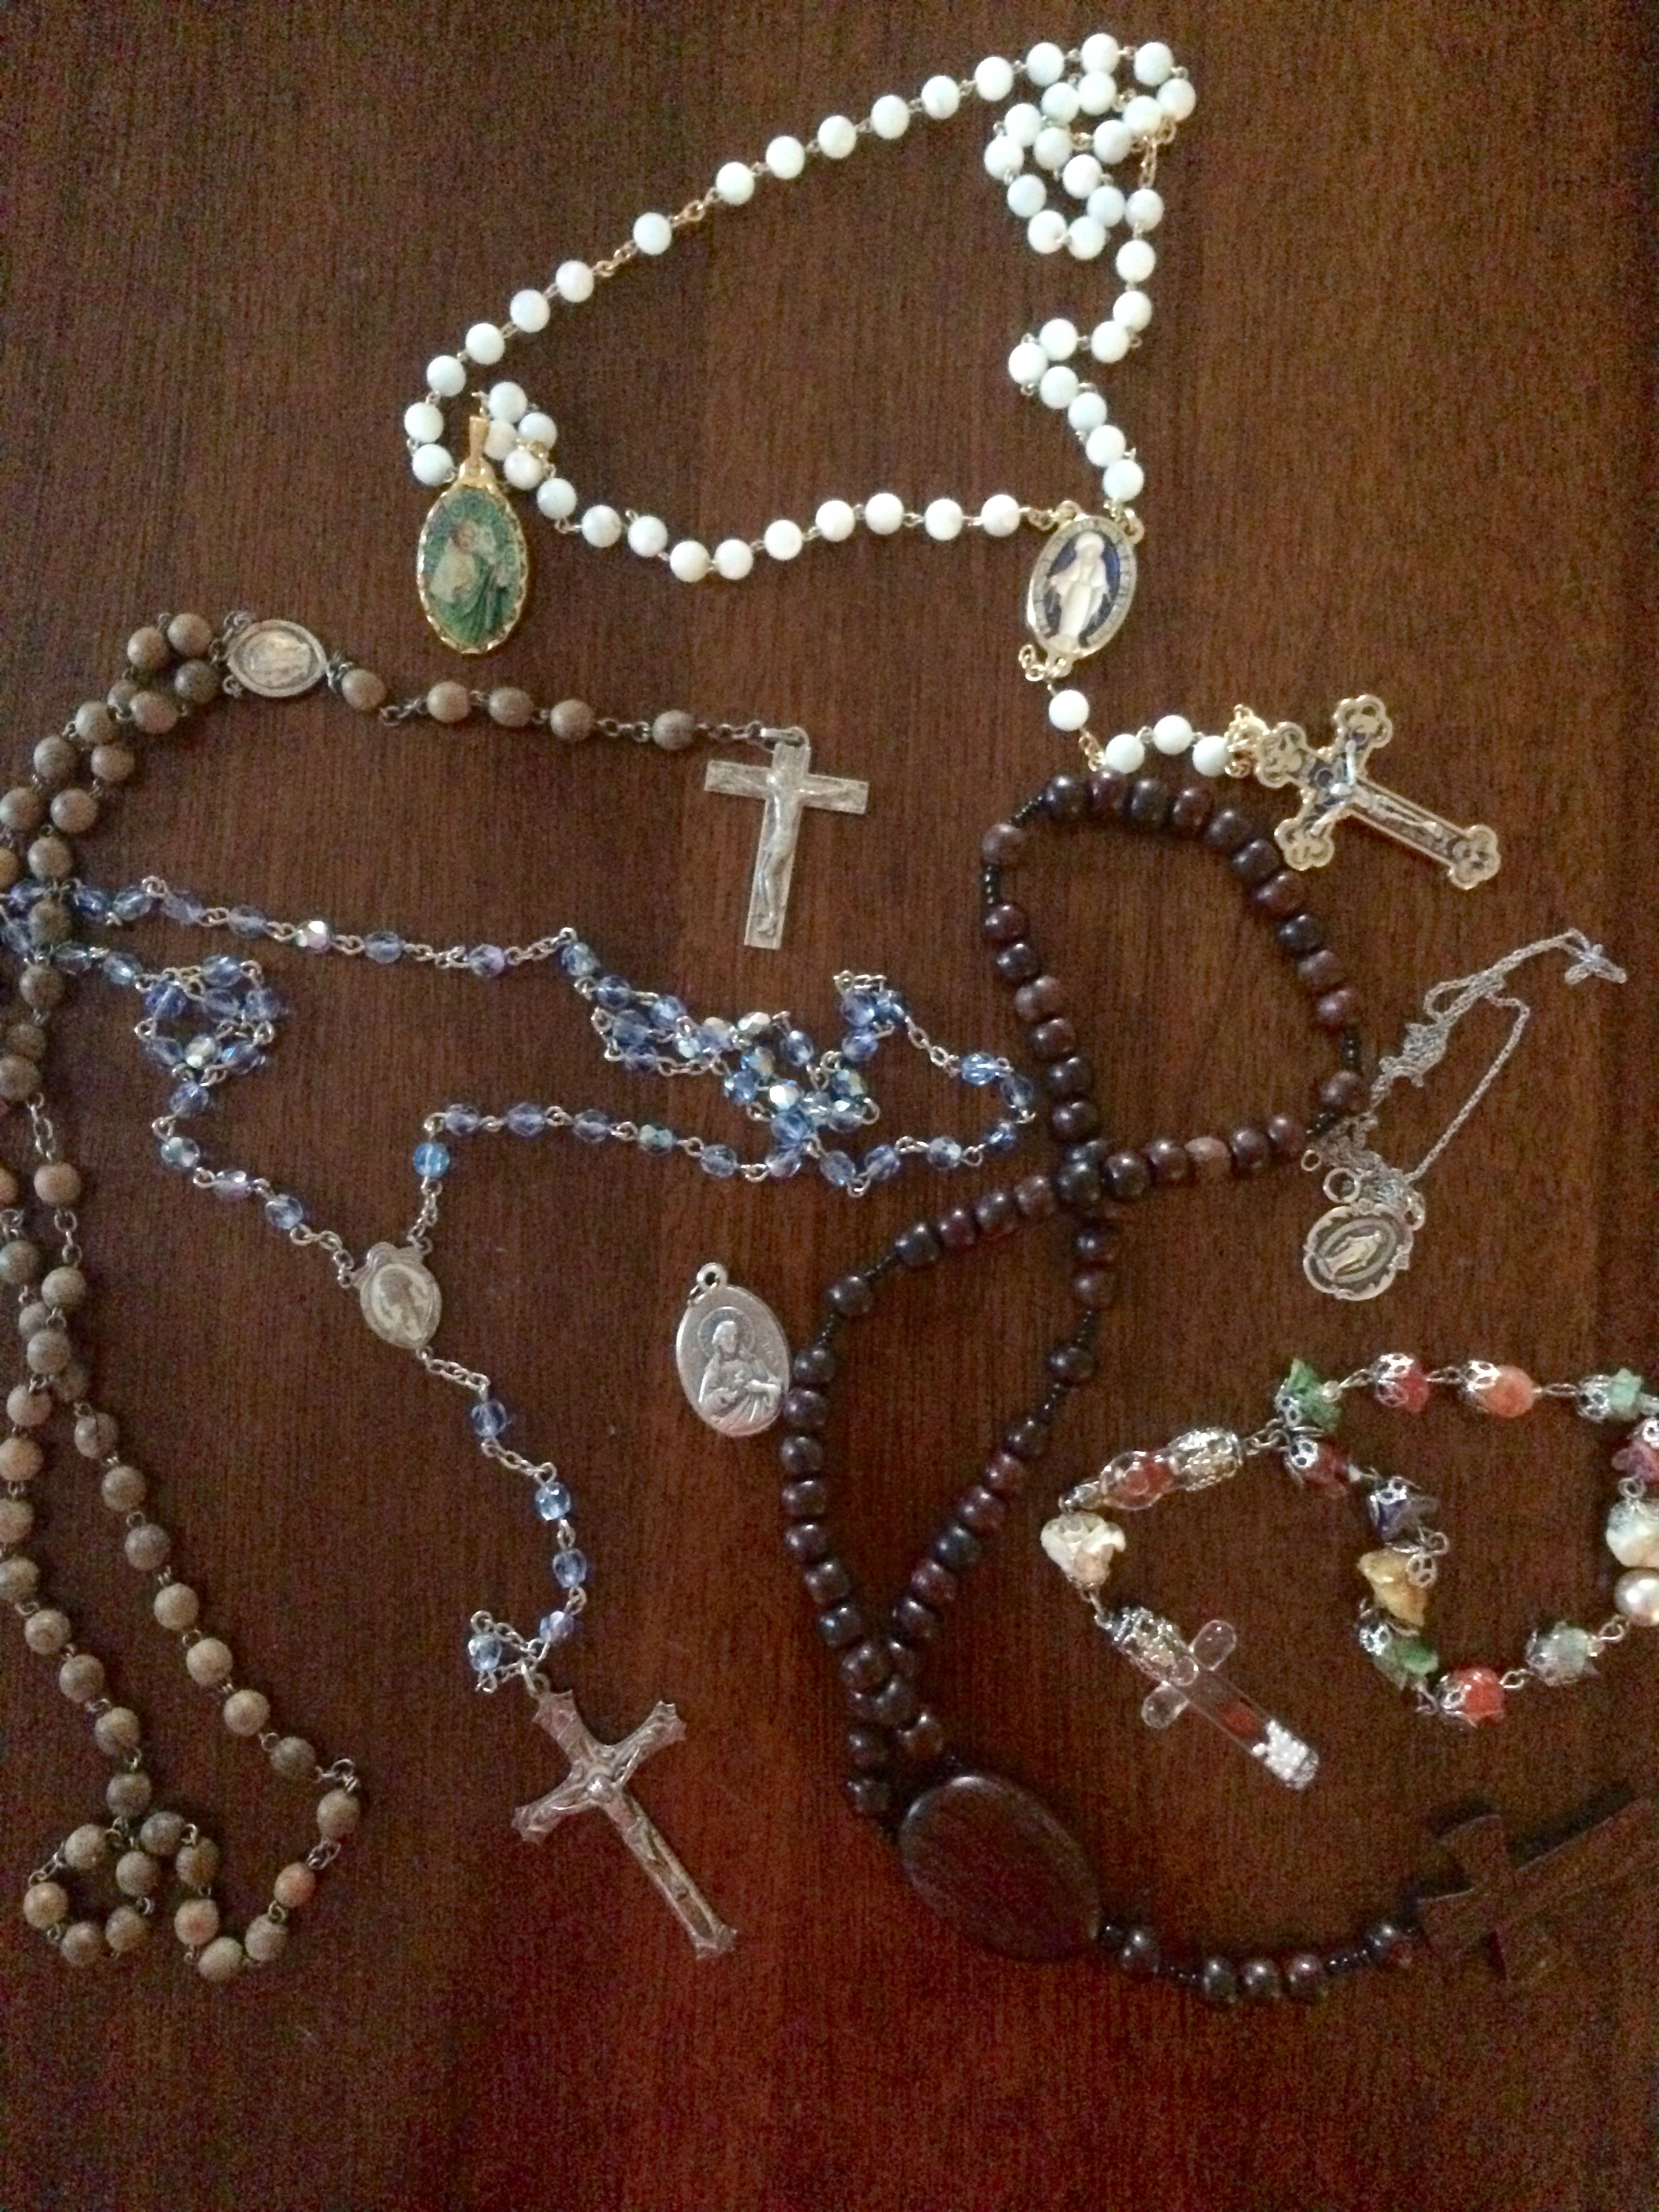 My collection of rosaries and medals. You can't take the idolatry out of the Catholic girl, no matter how much she questions the doctrine of her security blanket. So pretty...